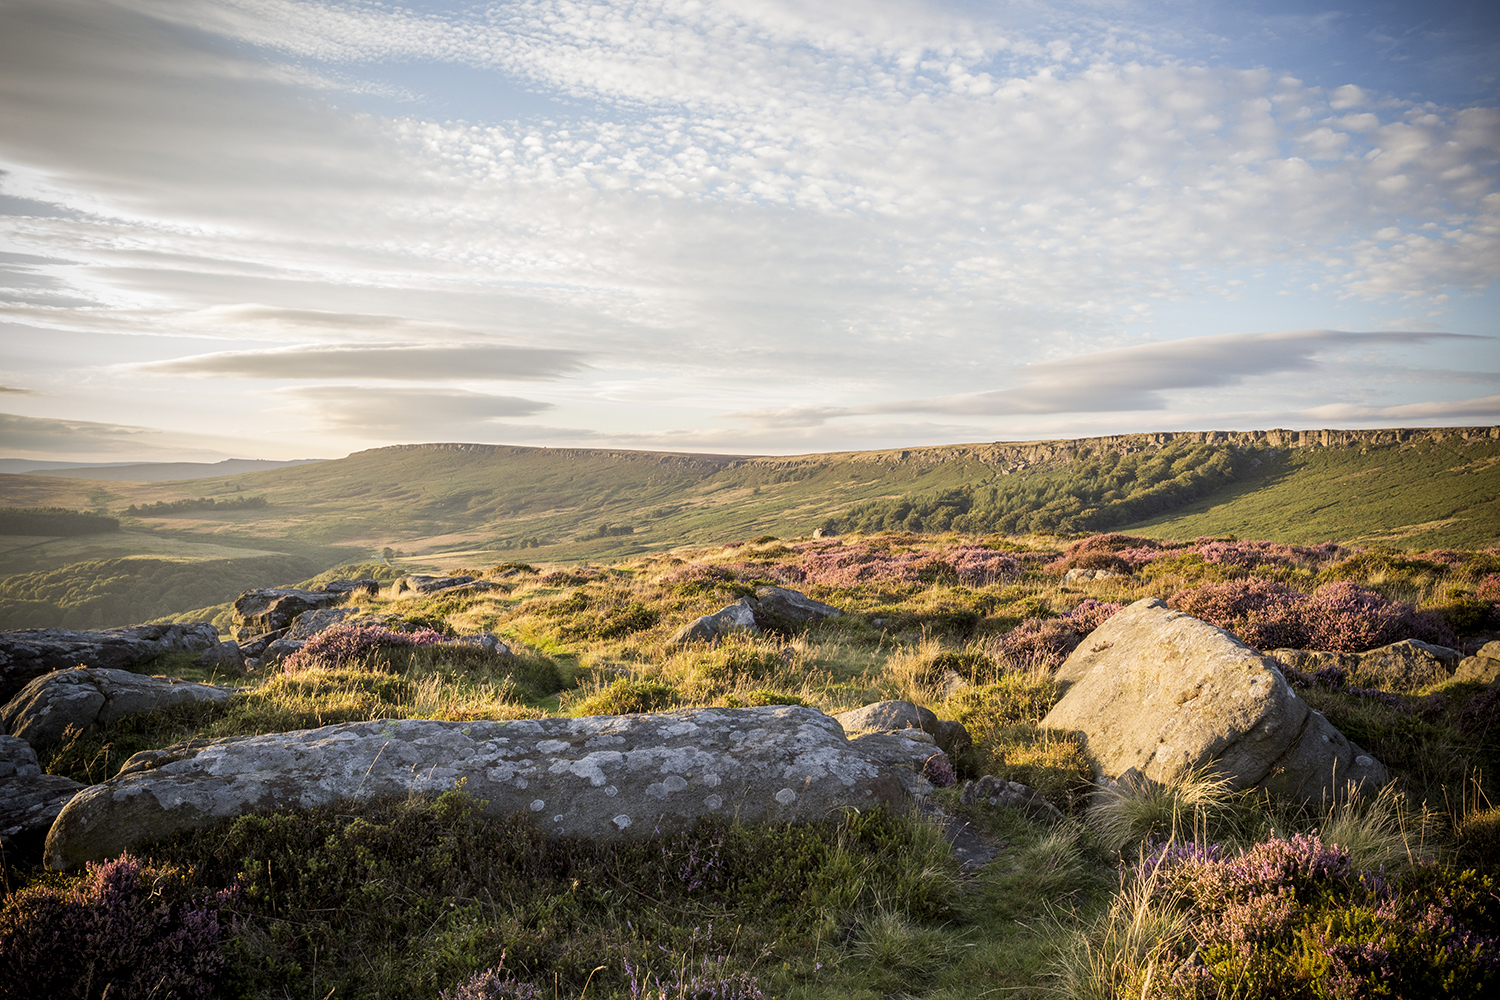 Peak District Landscapes | Stunning landscape photos from Britain's first national park